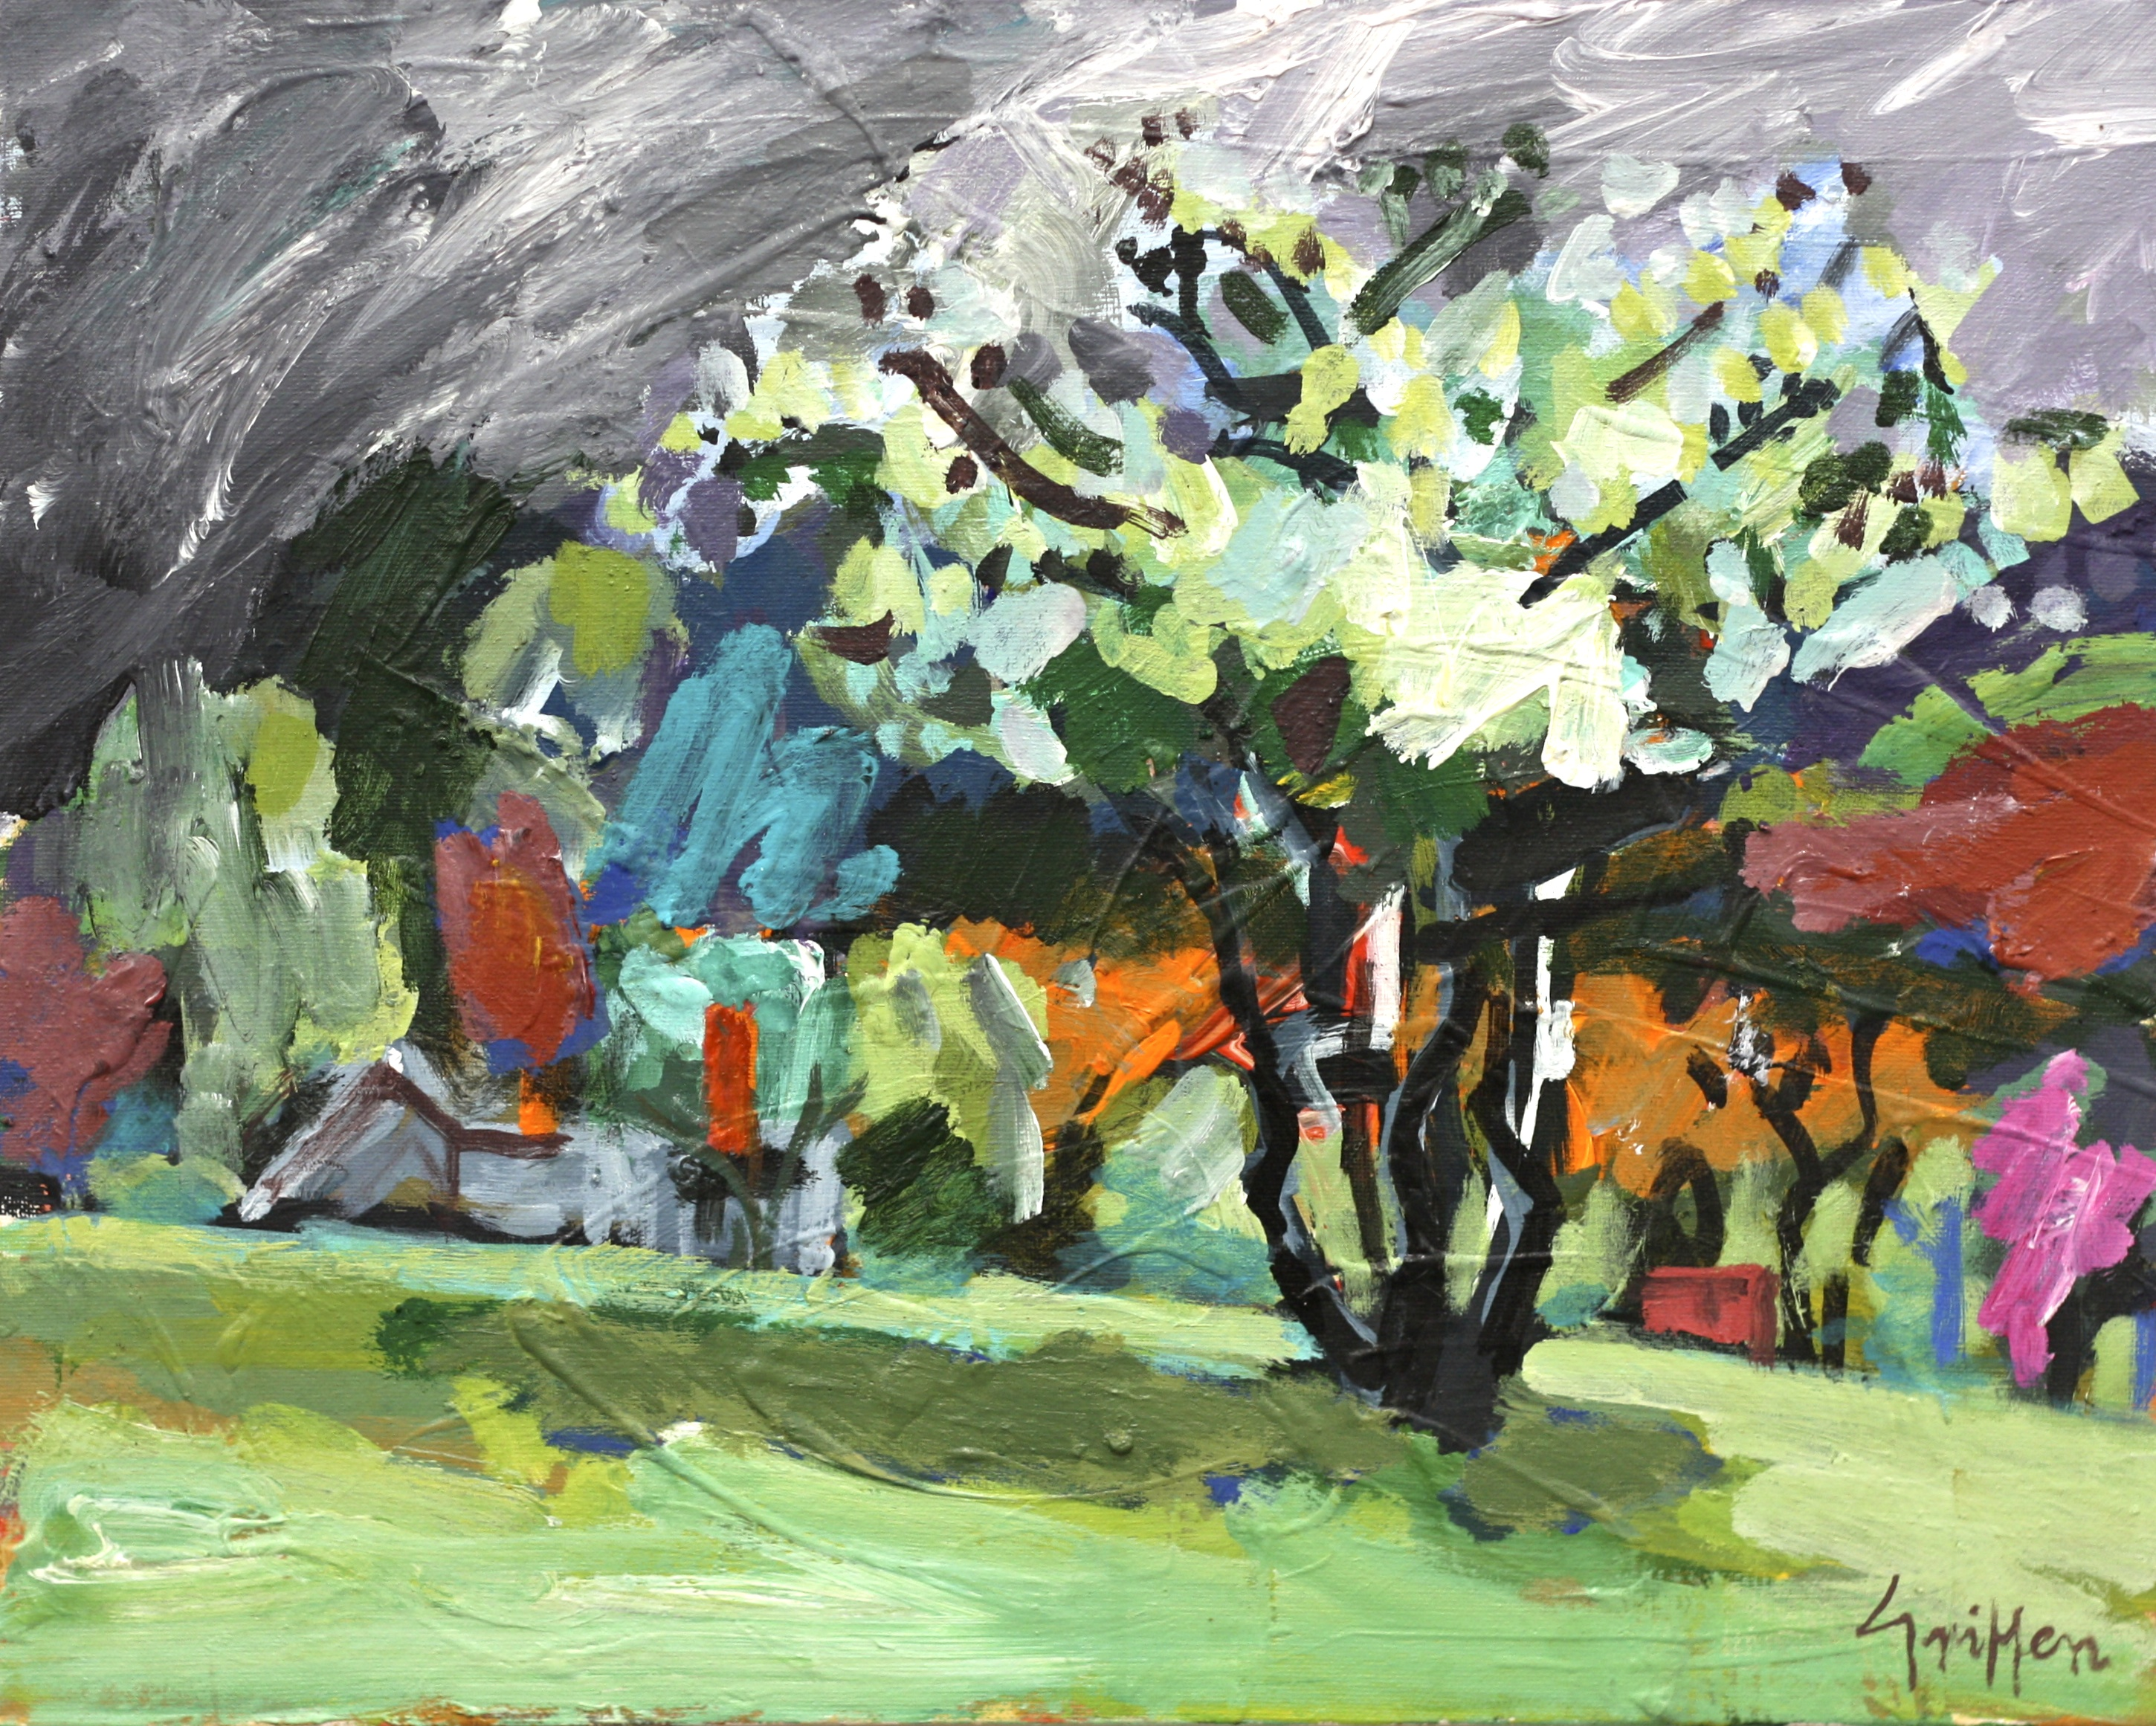 Blossom and Grey, Hill End 2010 acrylic on canvas 40x51cm